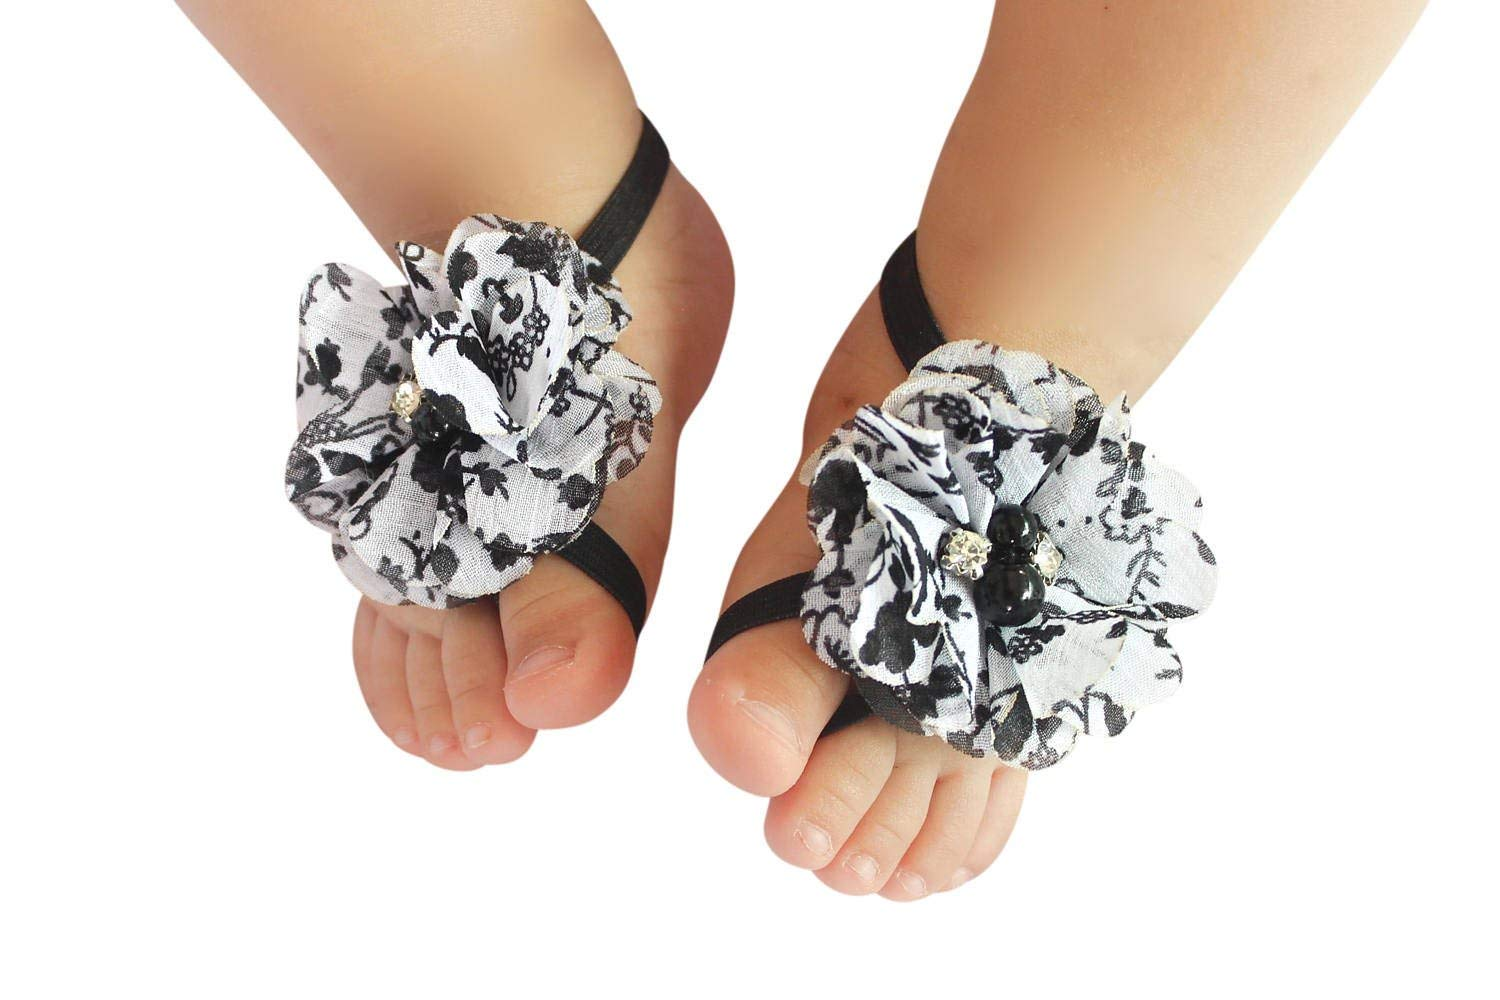 Newborn Elastic Shoes Buy Handmade Black And White Flower Baby Barefoot Sandals By